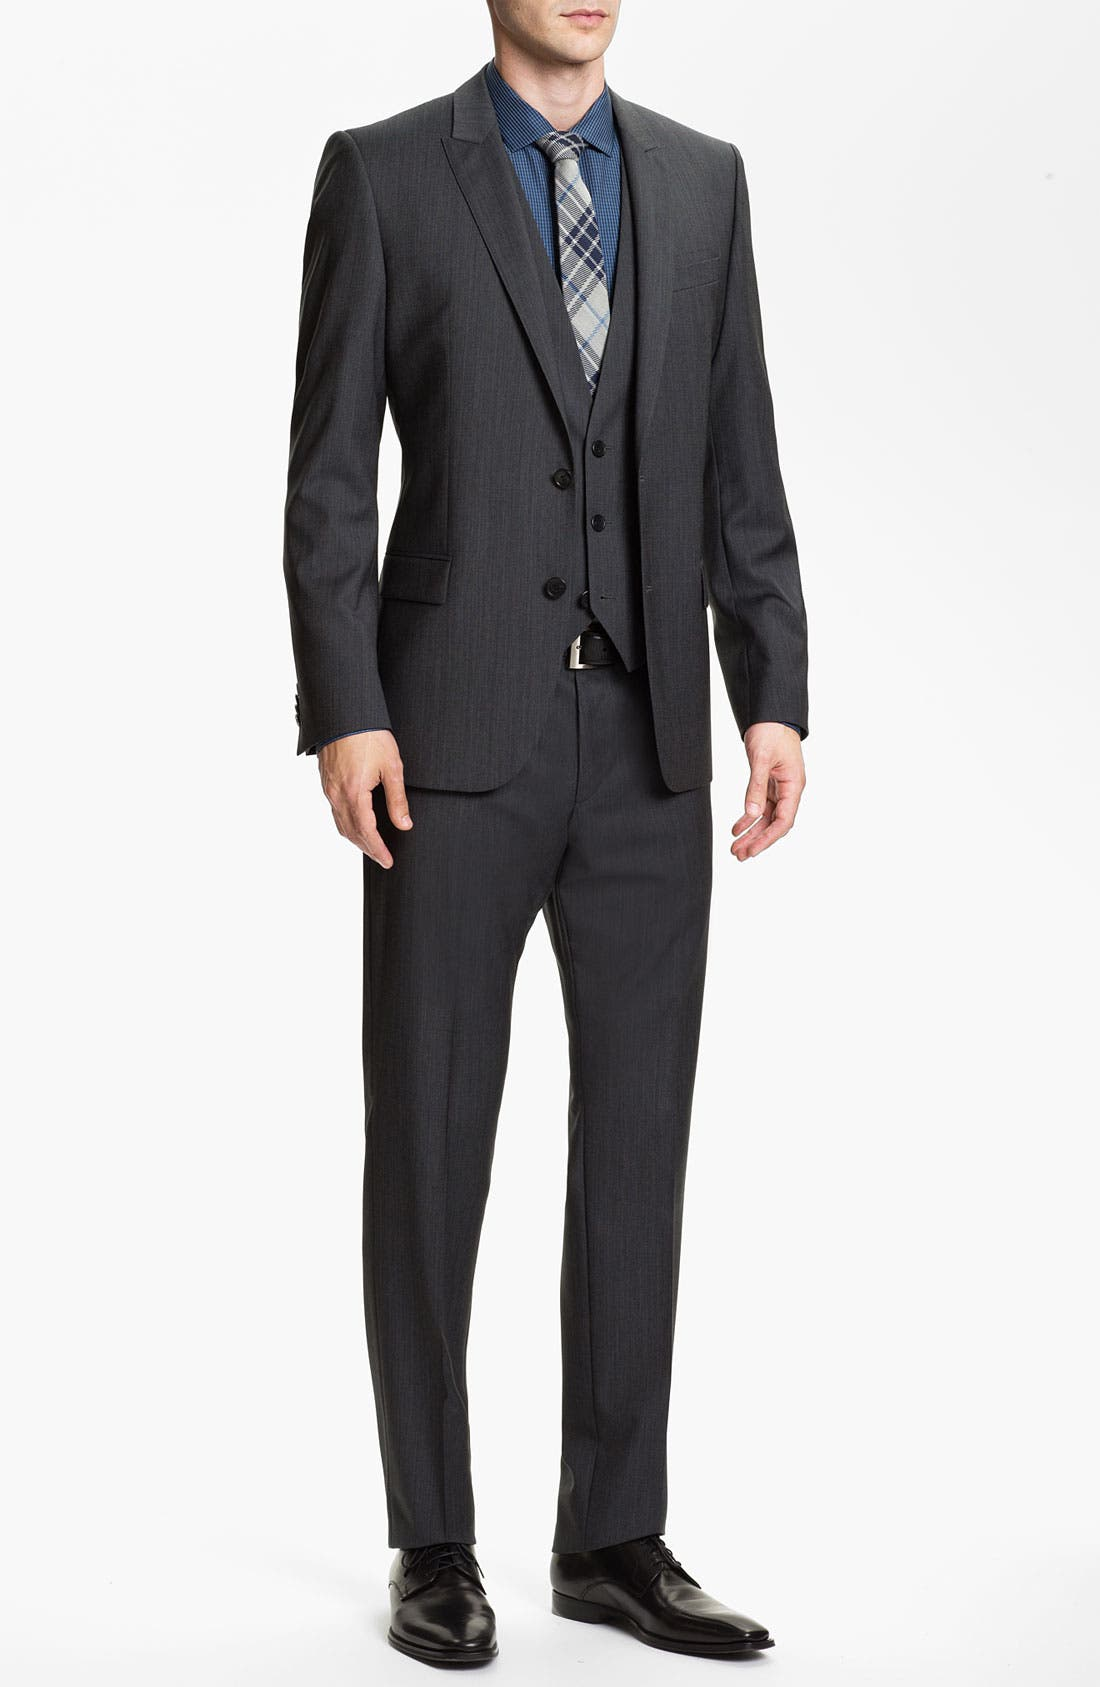 Main Image - HUGO 'Abaro/Wior/Hedit' Trim Fit Three Piece Suit